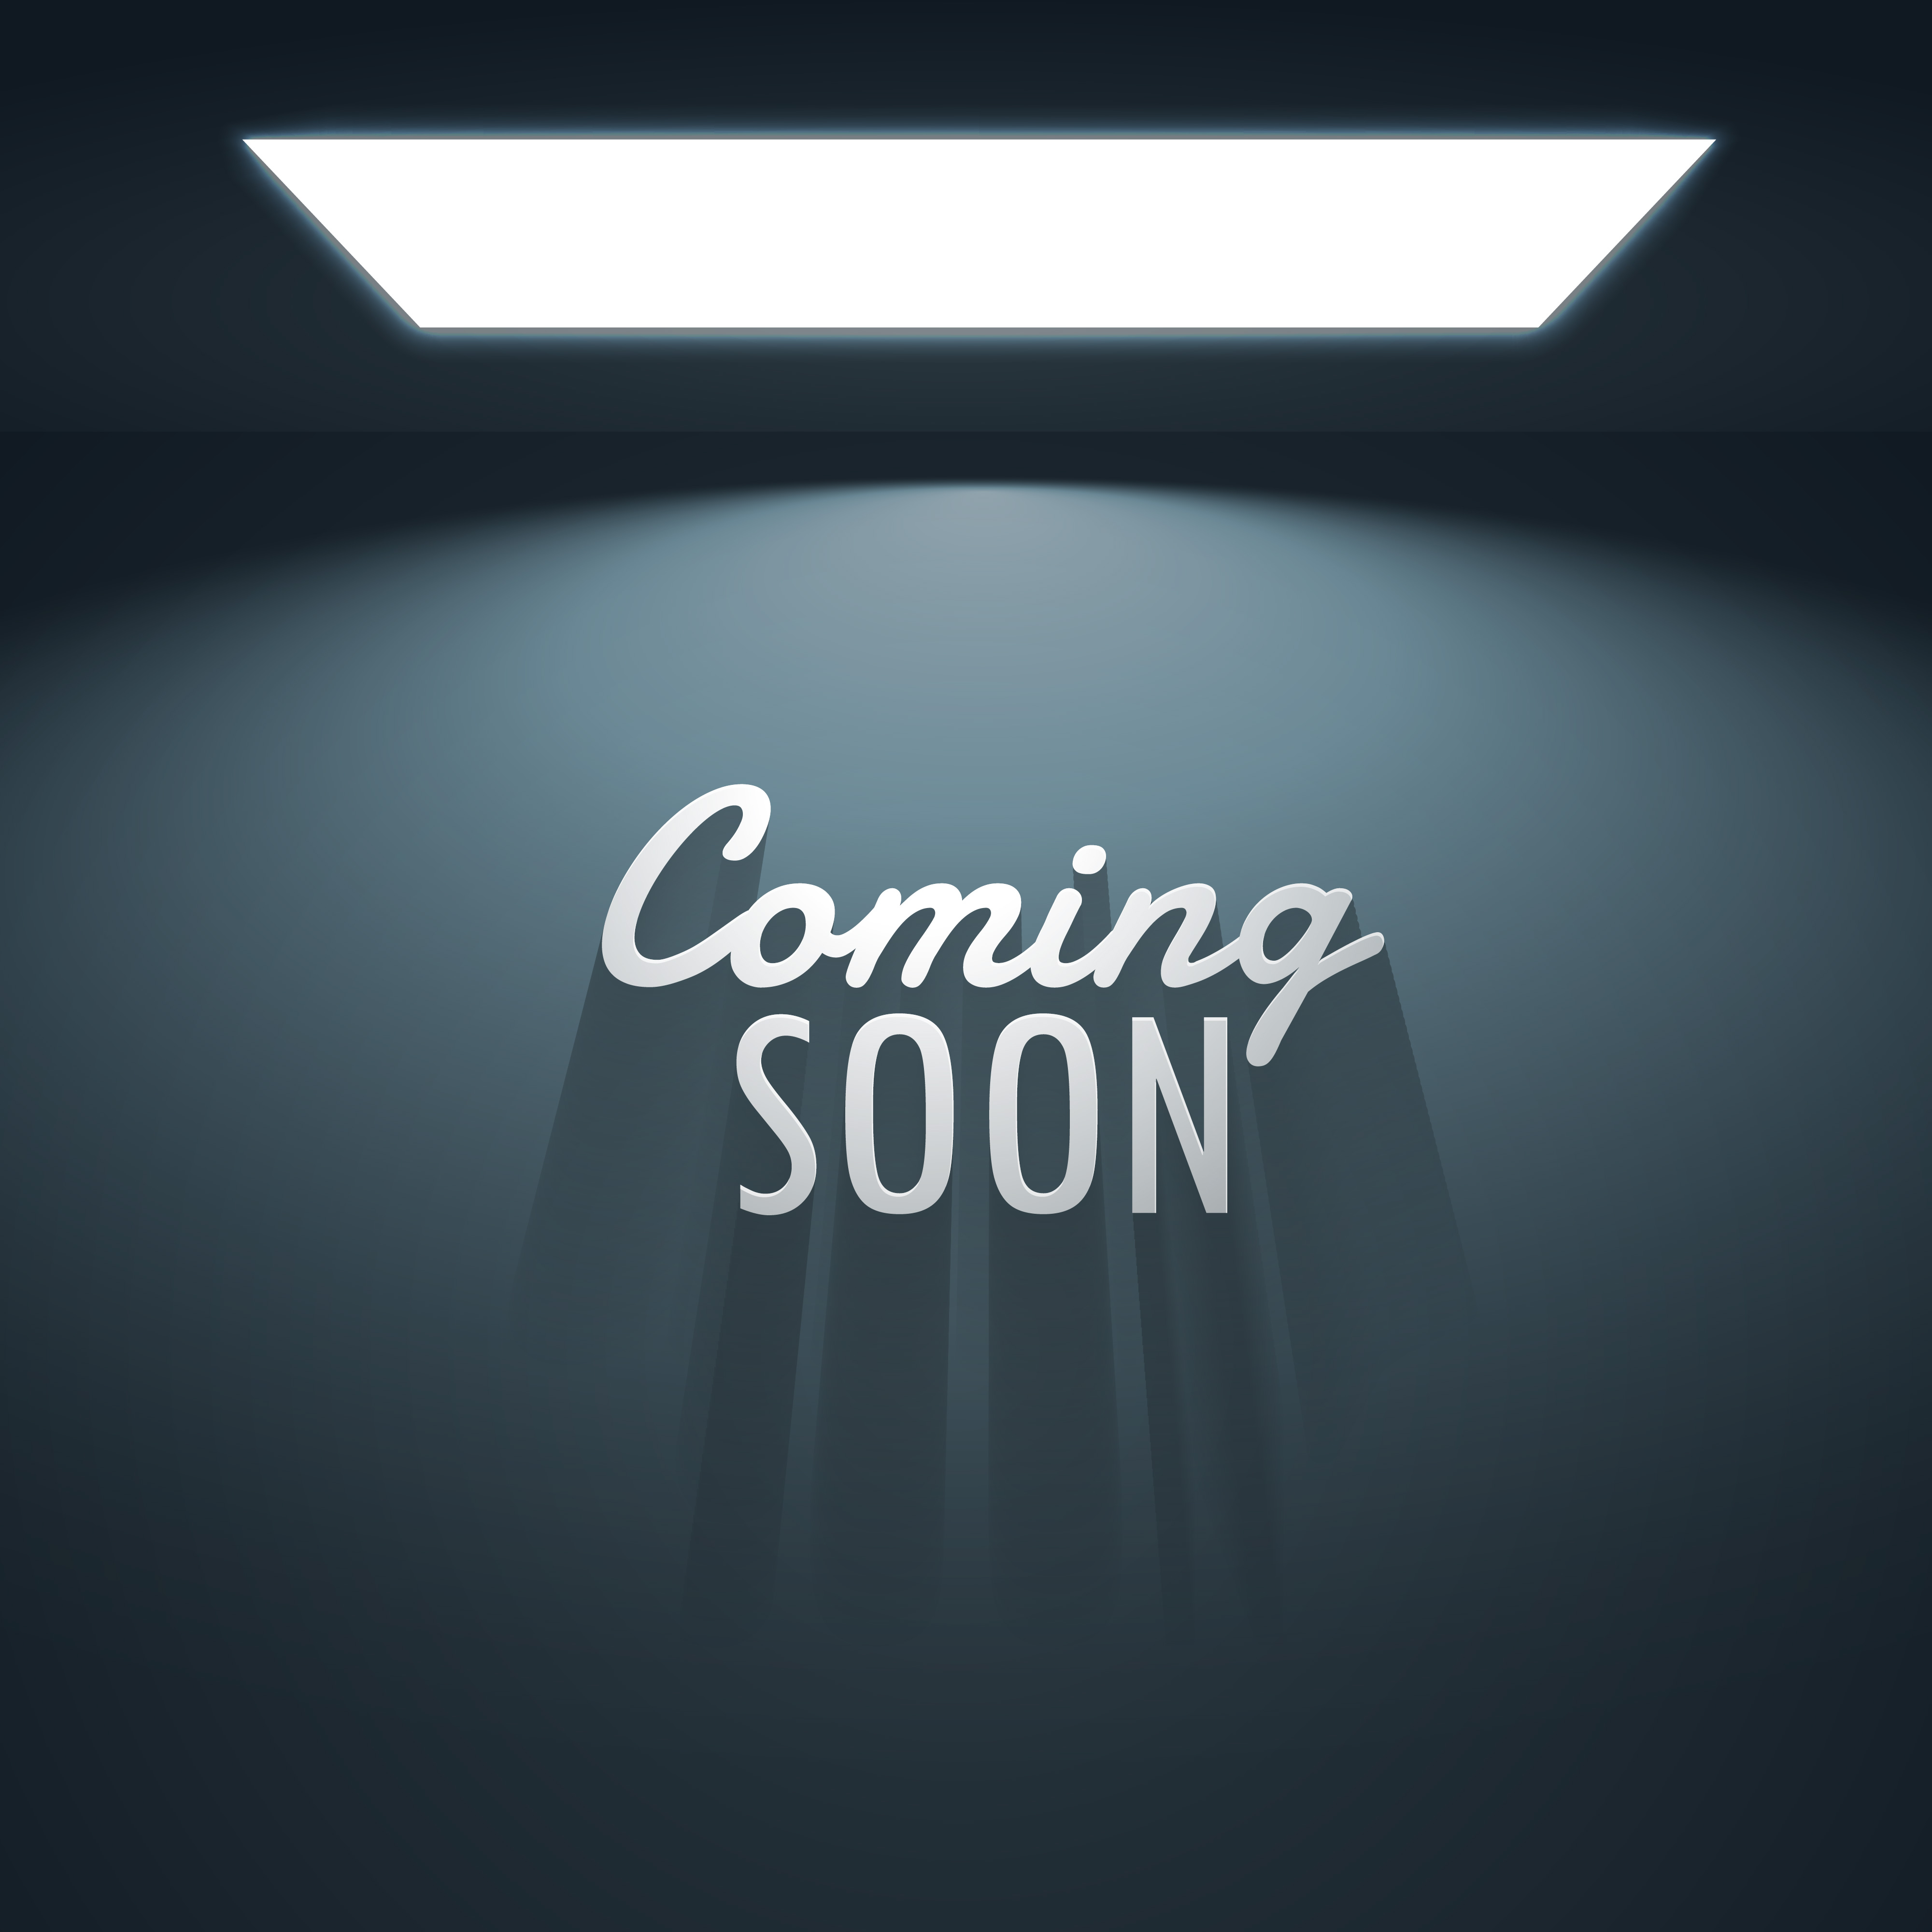 Coming Soon Image provided for free by Vectors via www.vecteezy.com (https://www.vecteezy.com)